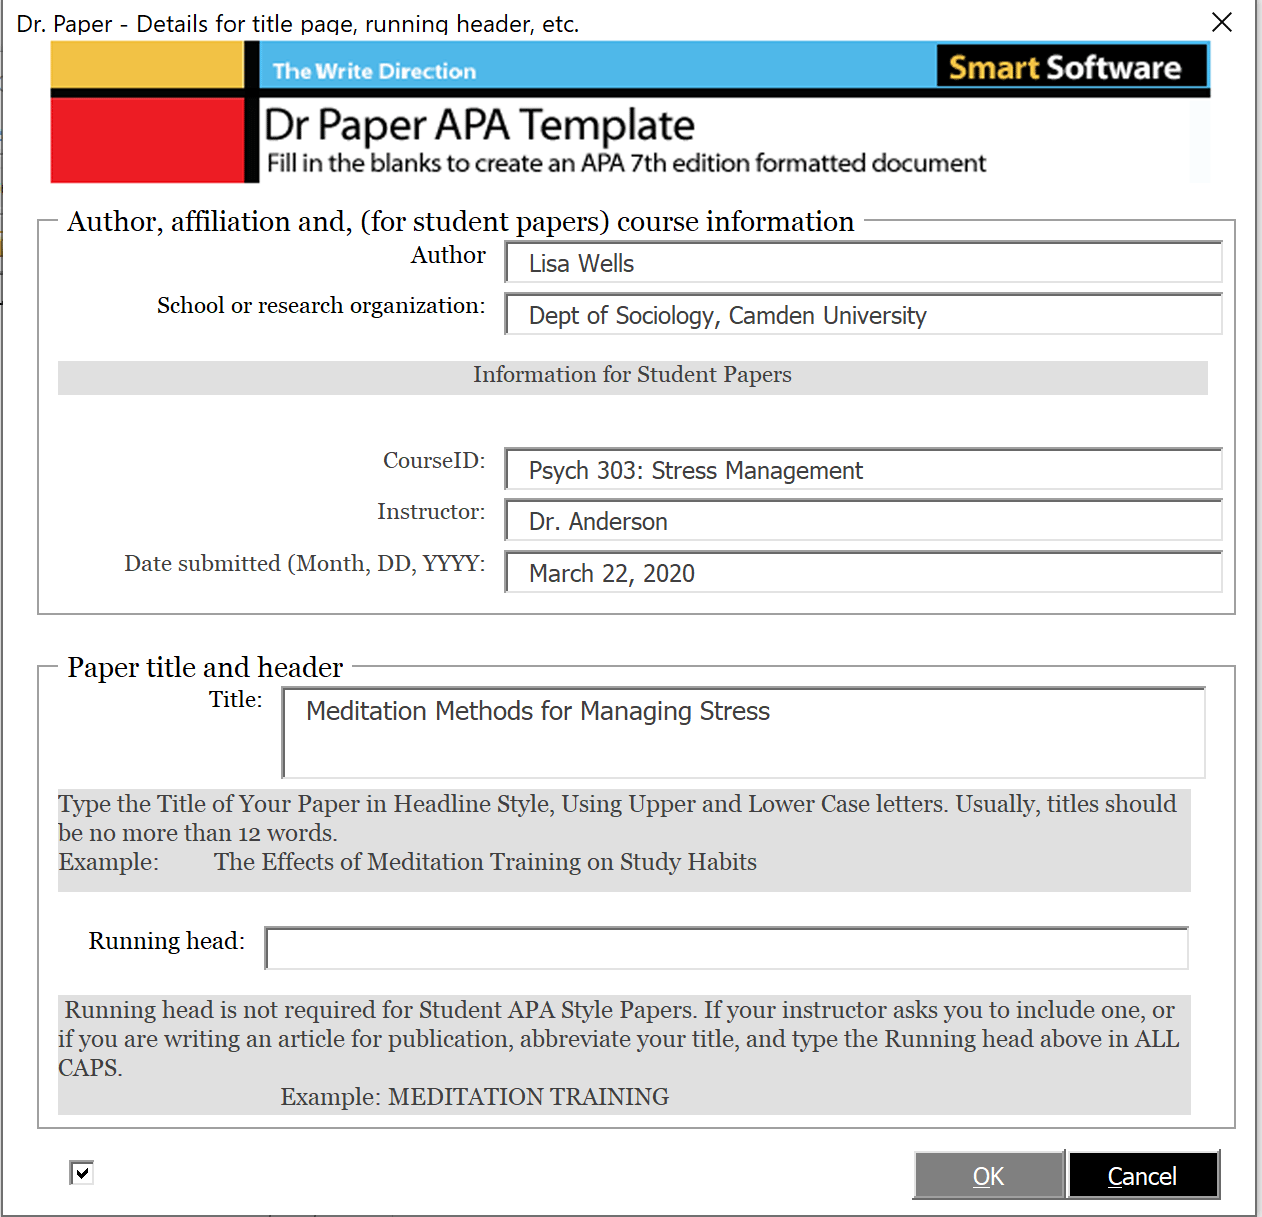 Creating an APA Style Document with Dr Paper Software